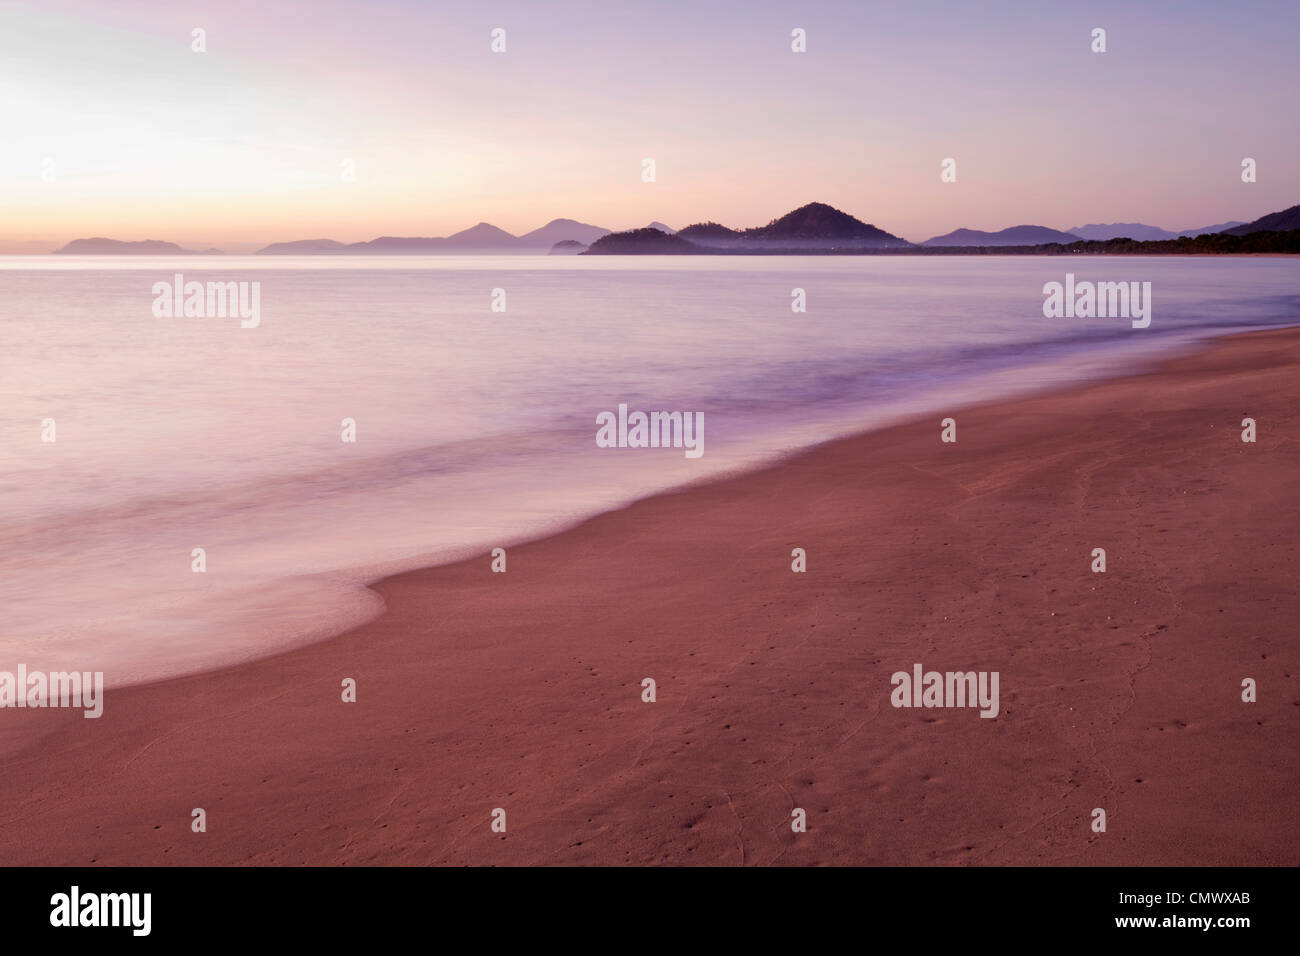 View along beach at dawn. Machans Beach, Cairns, Queensland, Australia - Stock Image